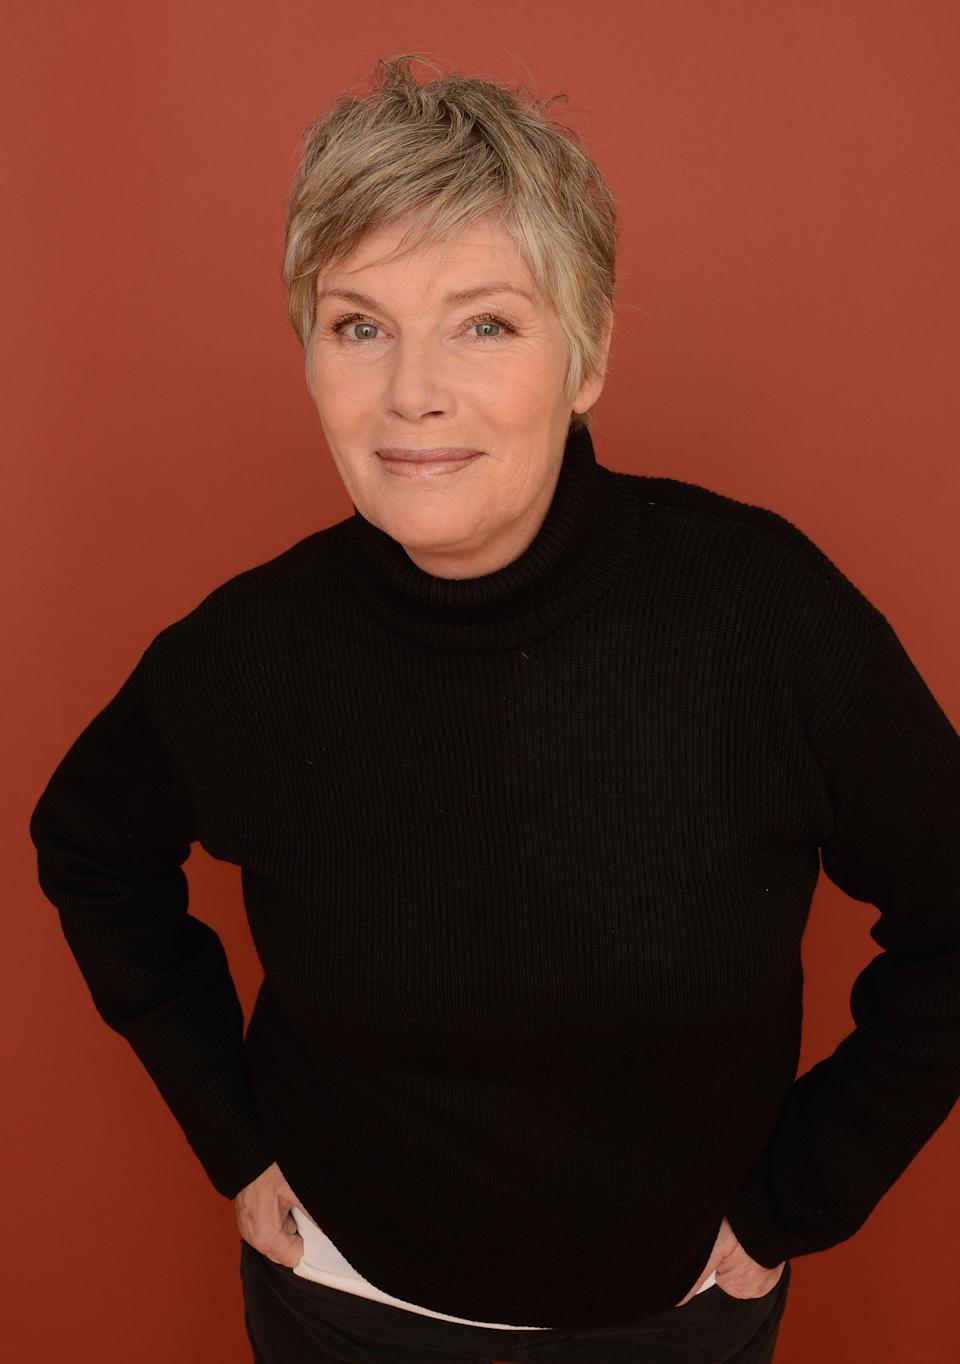 PARK CITY, UT - JANUARY 18:  Actress Kelly McGillis poses for a portrait during the 2013 Sundance Film Festival at the Getty Images Portrait Studio at Village at the Lift on January 18, 2013 in Park City, Utah.  (Photo by Larry Busacca/Getty Images)